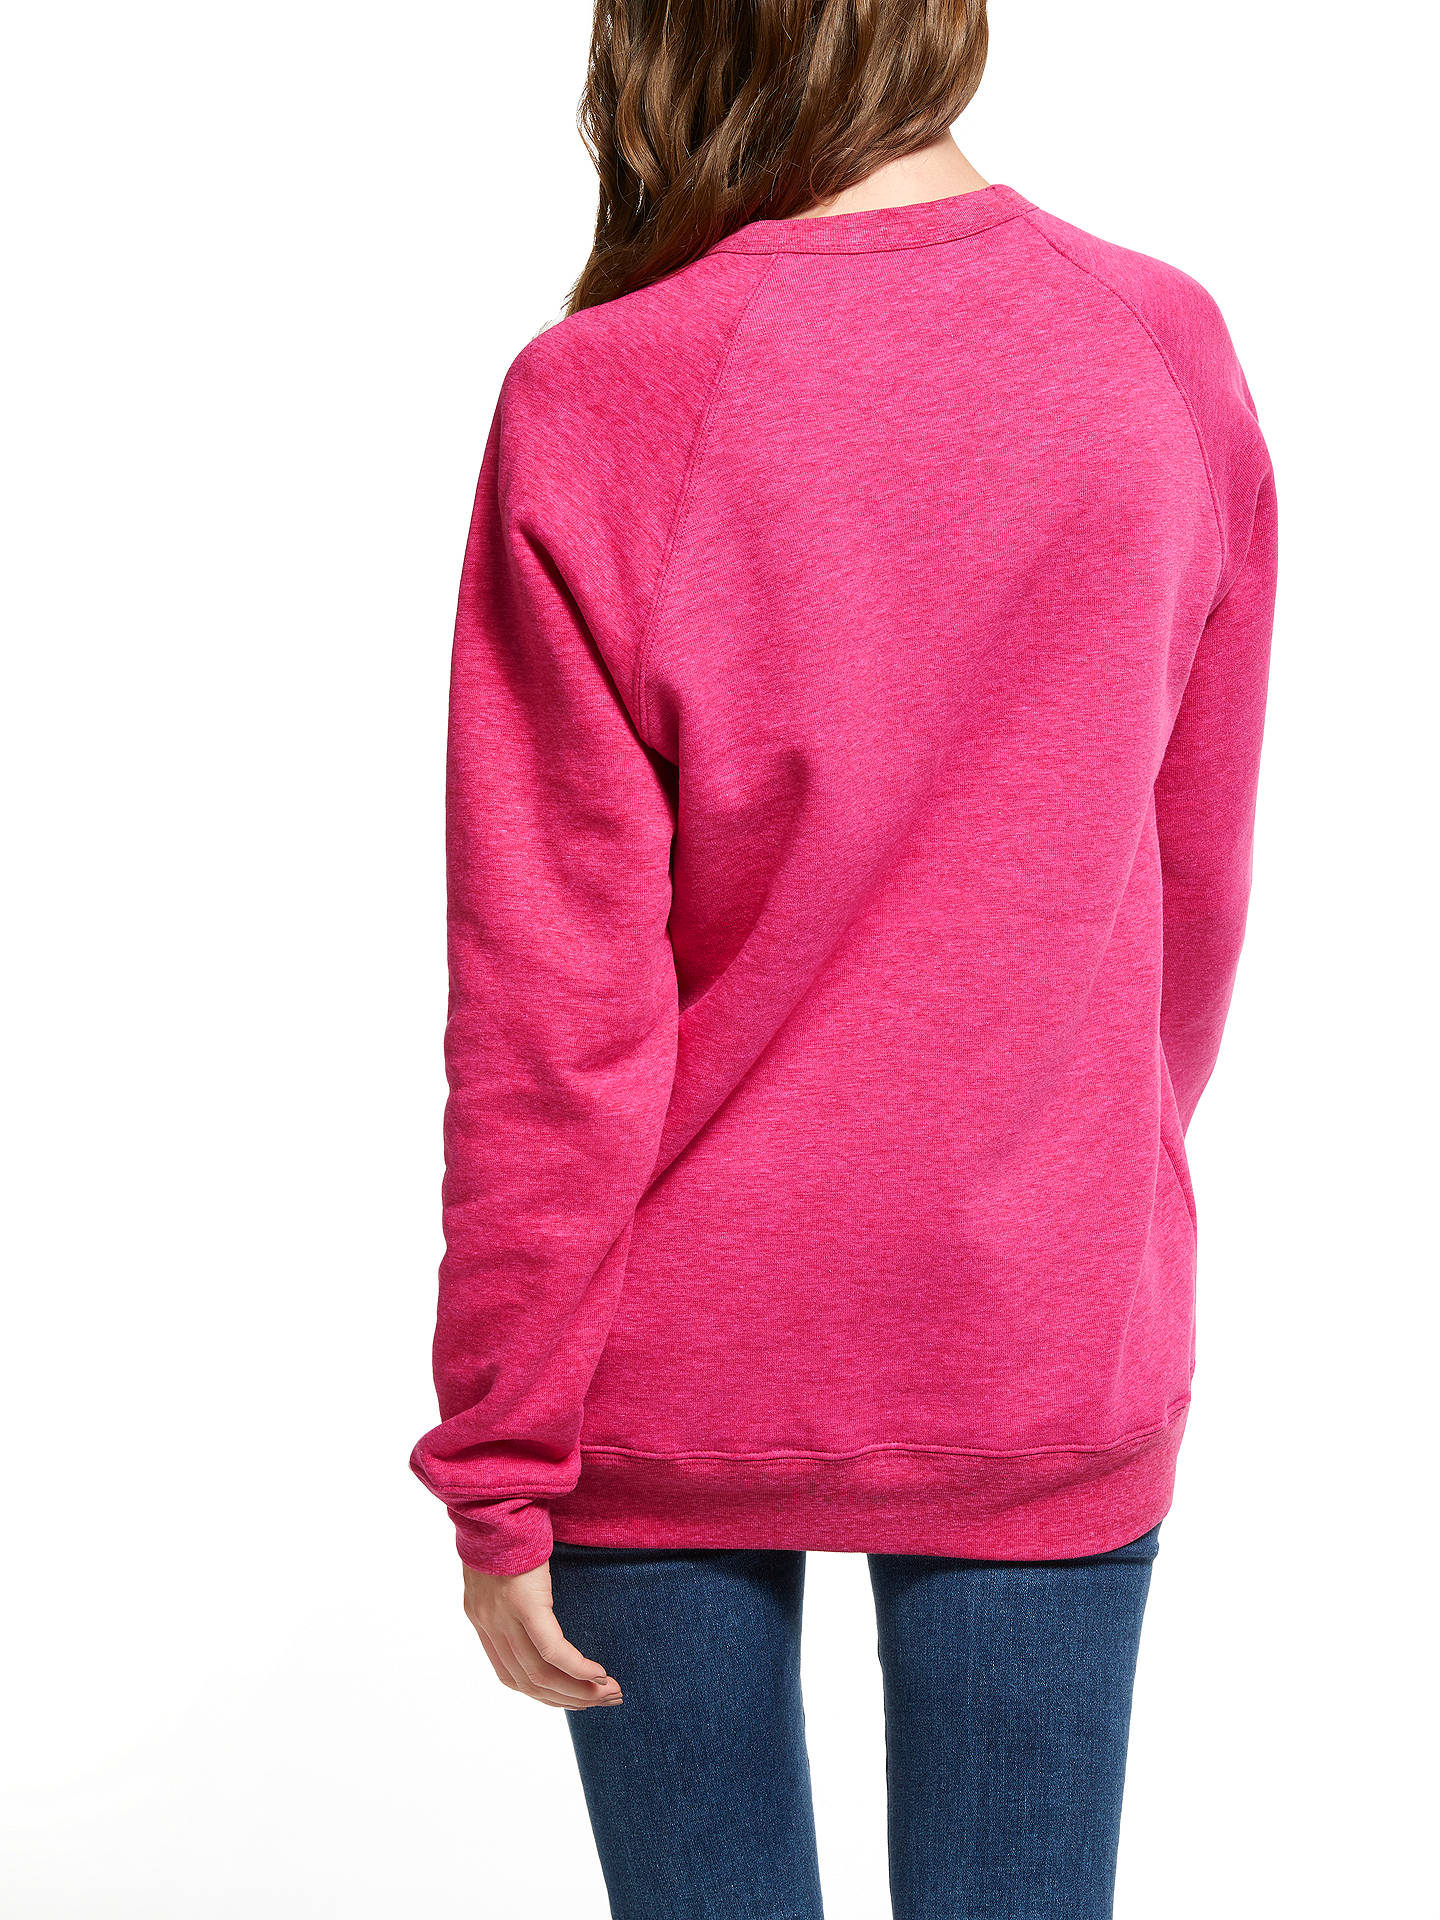 Buy Selfish Mother Winging It Crew Neck Sweatshirt, Pink, S Online at johnlewis.com